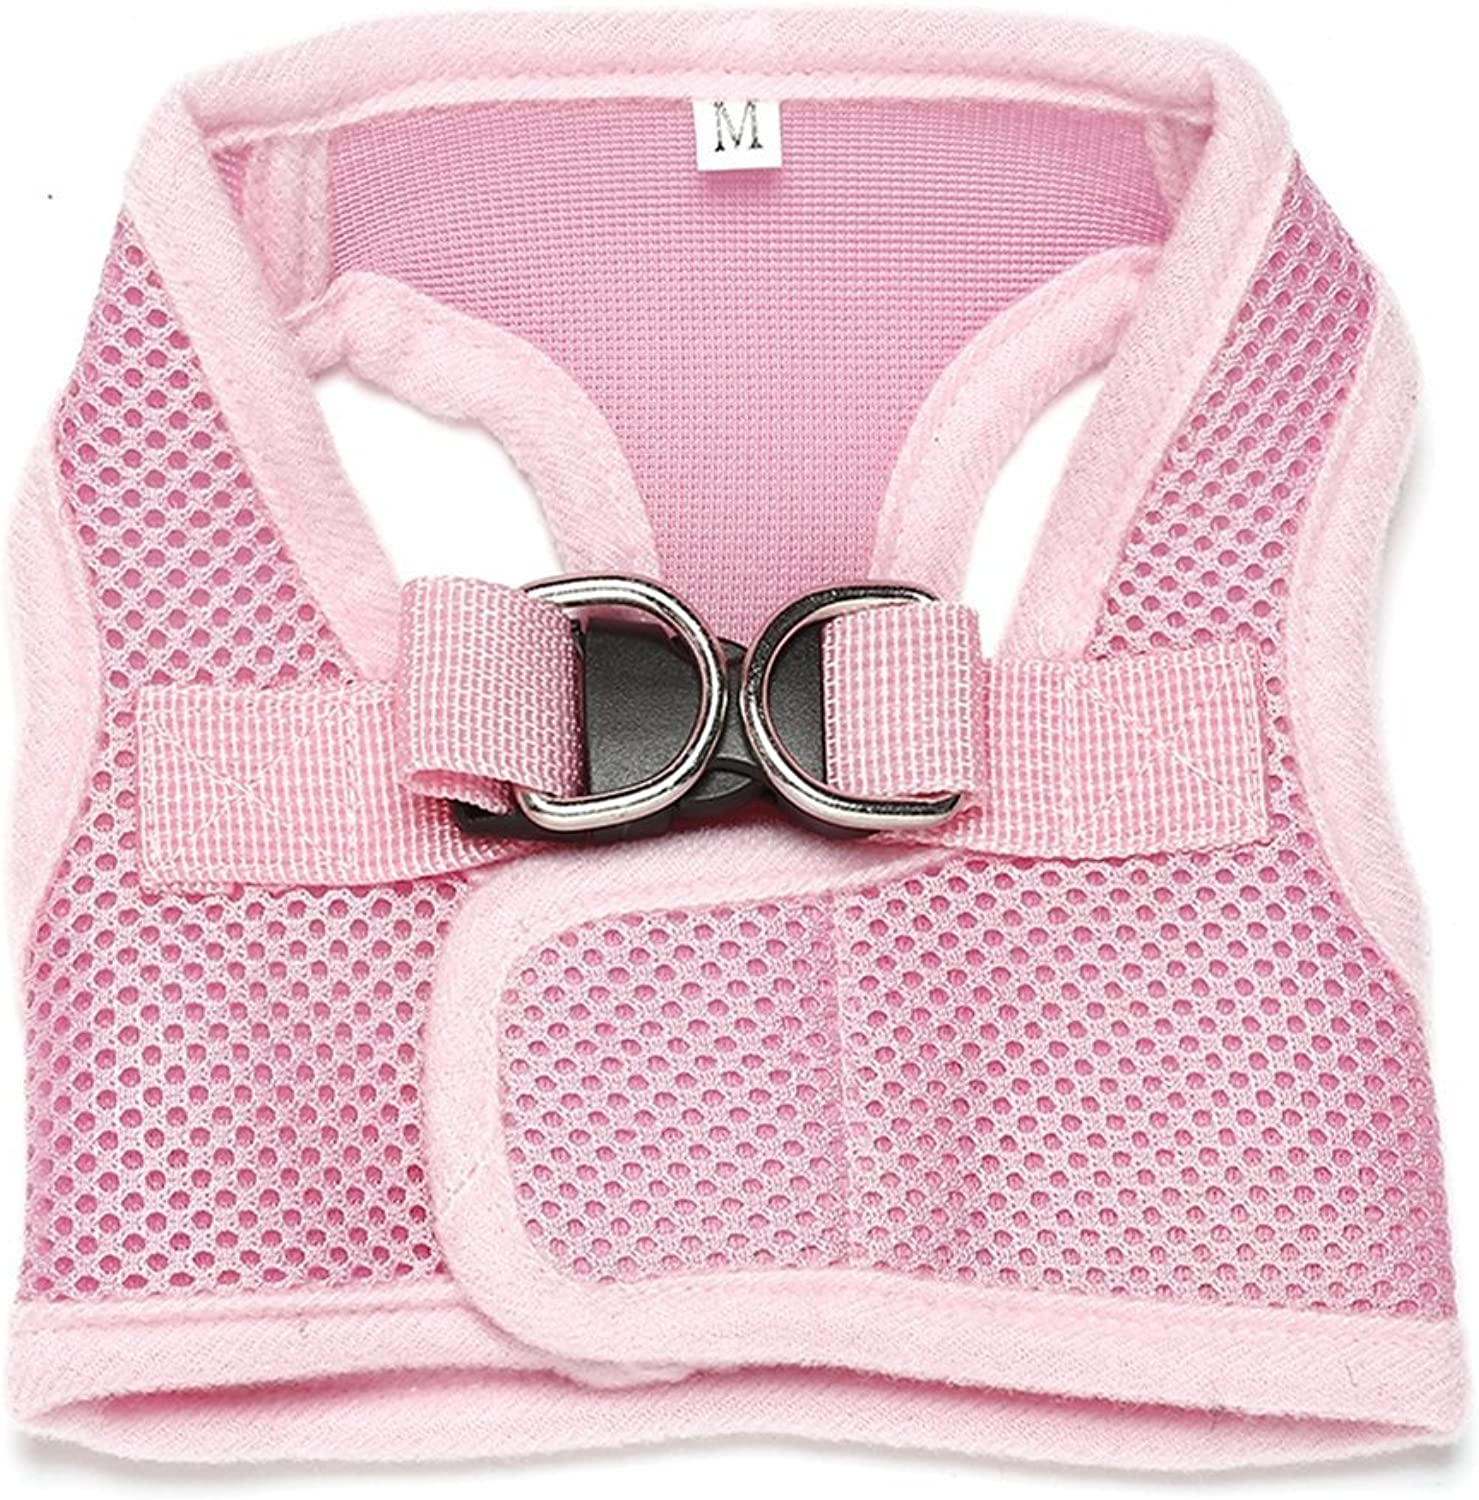 Jim Hugh Directly Sale 4Pcs lot Pet Dog Harness Mesh Breathable Vest Harness for Large Dogs and Small Cat Animals XSXXL